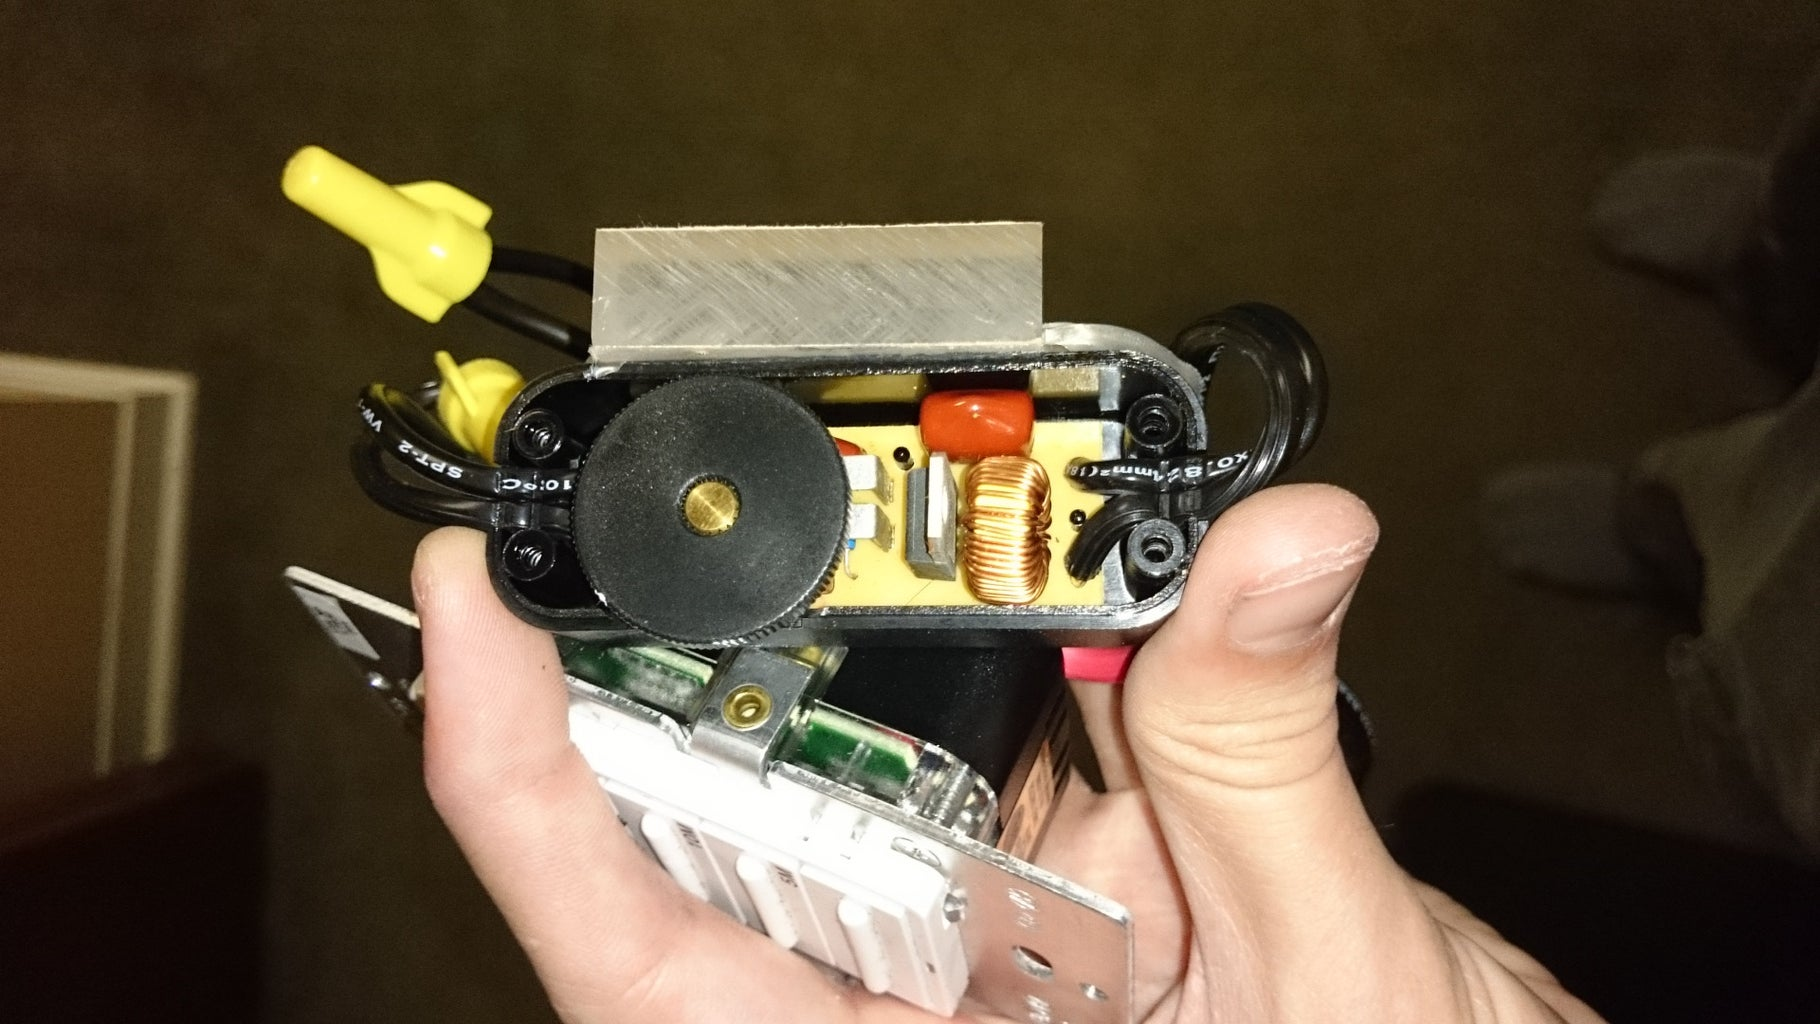 Taking Apart the Dimmer